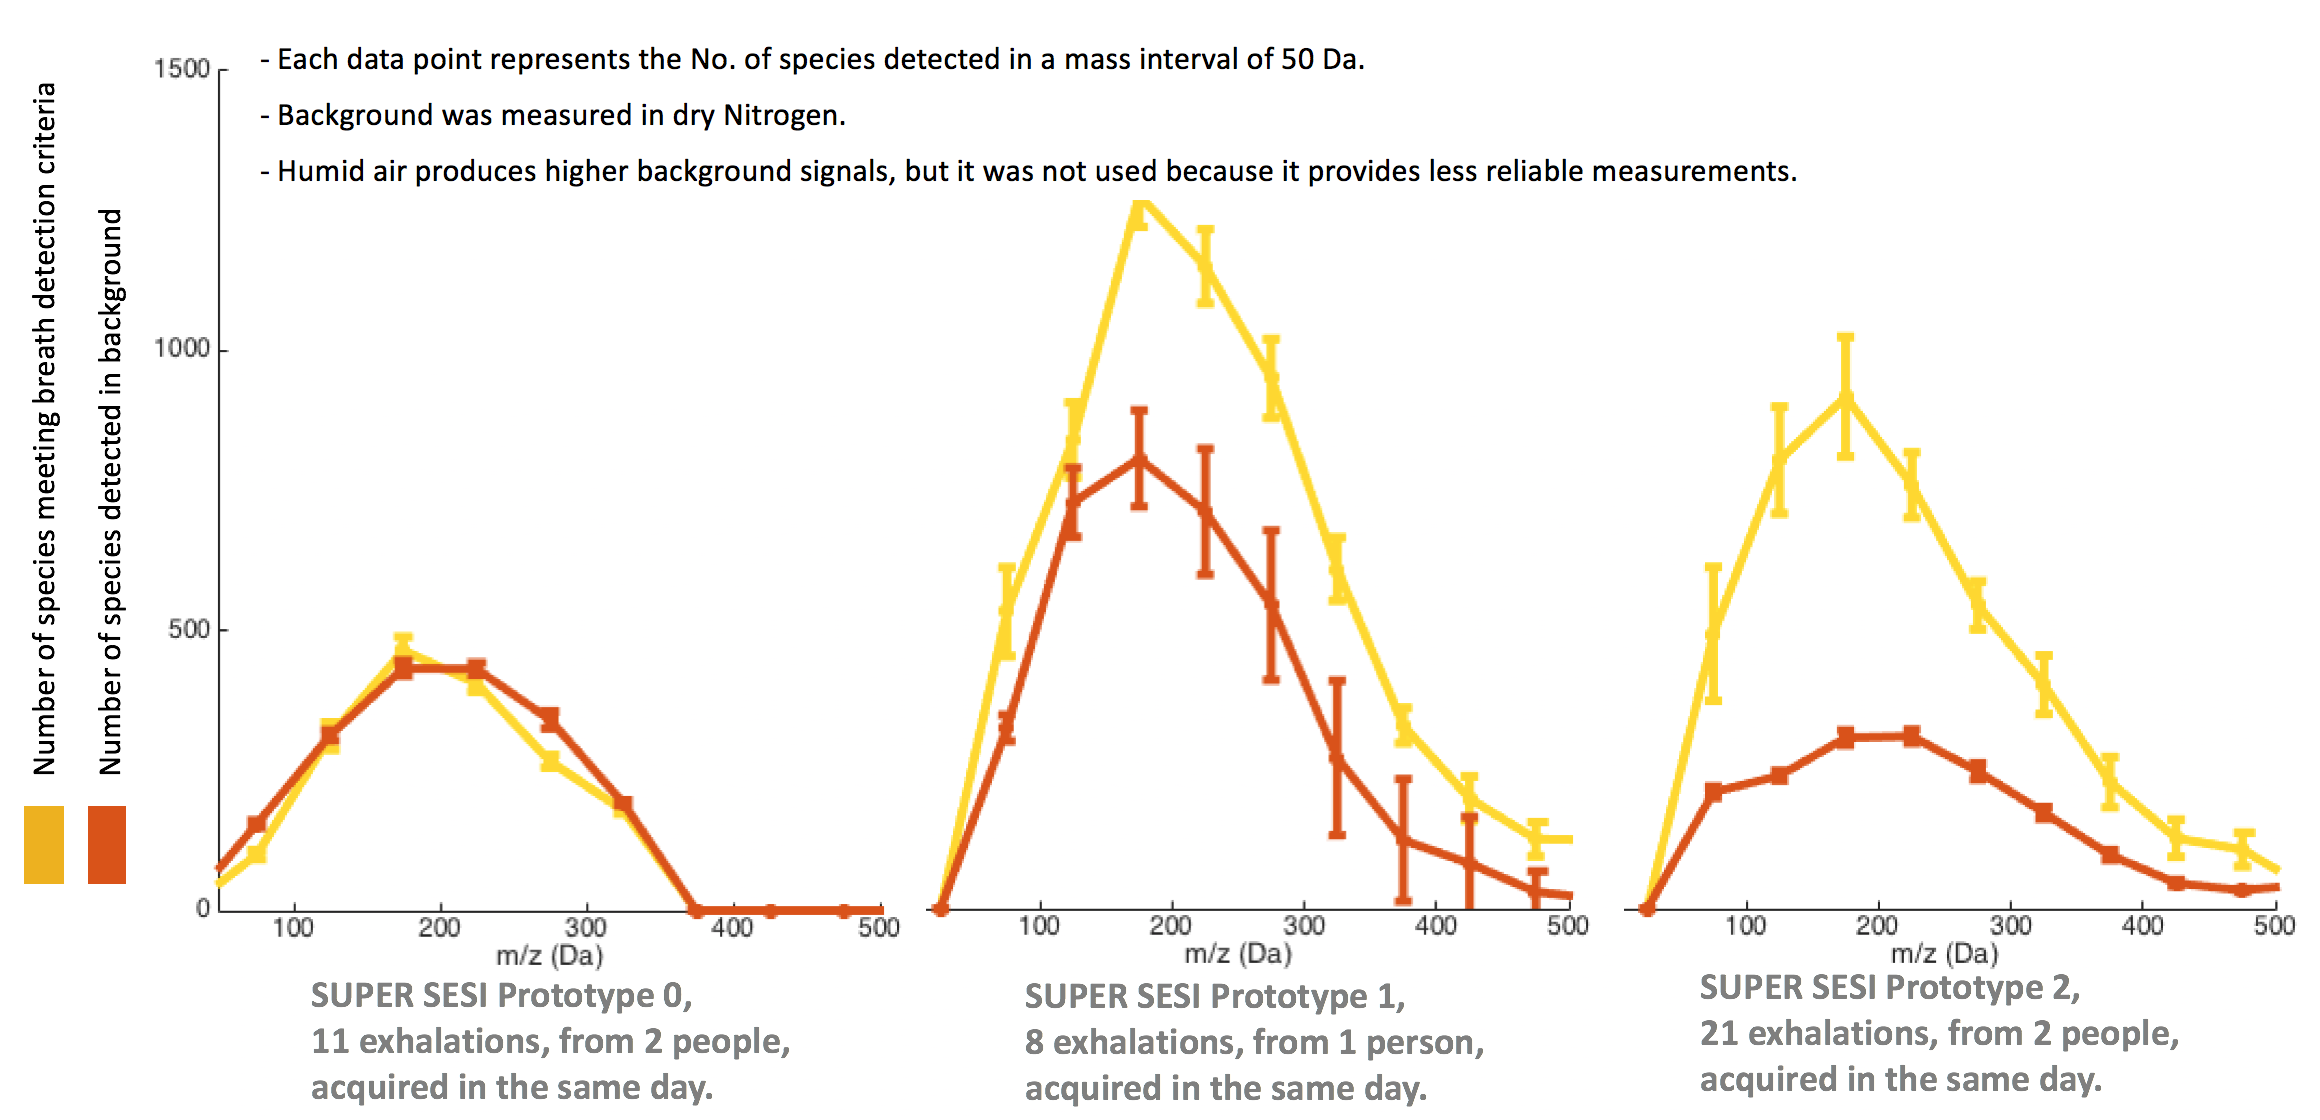 These figures represent the number of species detected by three consecutive generations of SUPER SESI coupled with Oritrap, in breath and in the background of dry nitrogen. Background species are counted if they produce a signal above a threshold intensity of 1000 (a.u.). Breath signals are counted if the ratio Exhaled Breath signal (EB) over Background (BG) signal is larger than three.  Counted species detected in breath and background meet the following criteria:   EB:    (EB-BG)/BG > 3 & EB > 1000 a.u.     BG:    BG > 1000 a.u.   The prototypes SS0 and SS2 were coupled to an Orbitrap QE, and 1 was coupled to a QE Plus. For SS0, EB and BG were rather similar. SS1 was coated with silica. This improved the ratio of EB over BG. The better sensitivity observed for SS1 can be attributed to the better spectrometer. The flow configuration for SS2 was redesigned to minimize internal area exposed to contaminants. This design is based on the new numerical method that simulates the transfer of momentum from the ions to the neutral molecules. SS2 provided very repeatable BG, and the best ratio EB/BG.